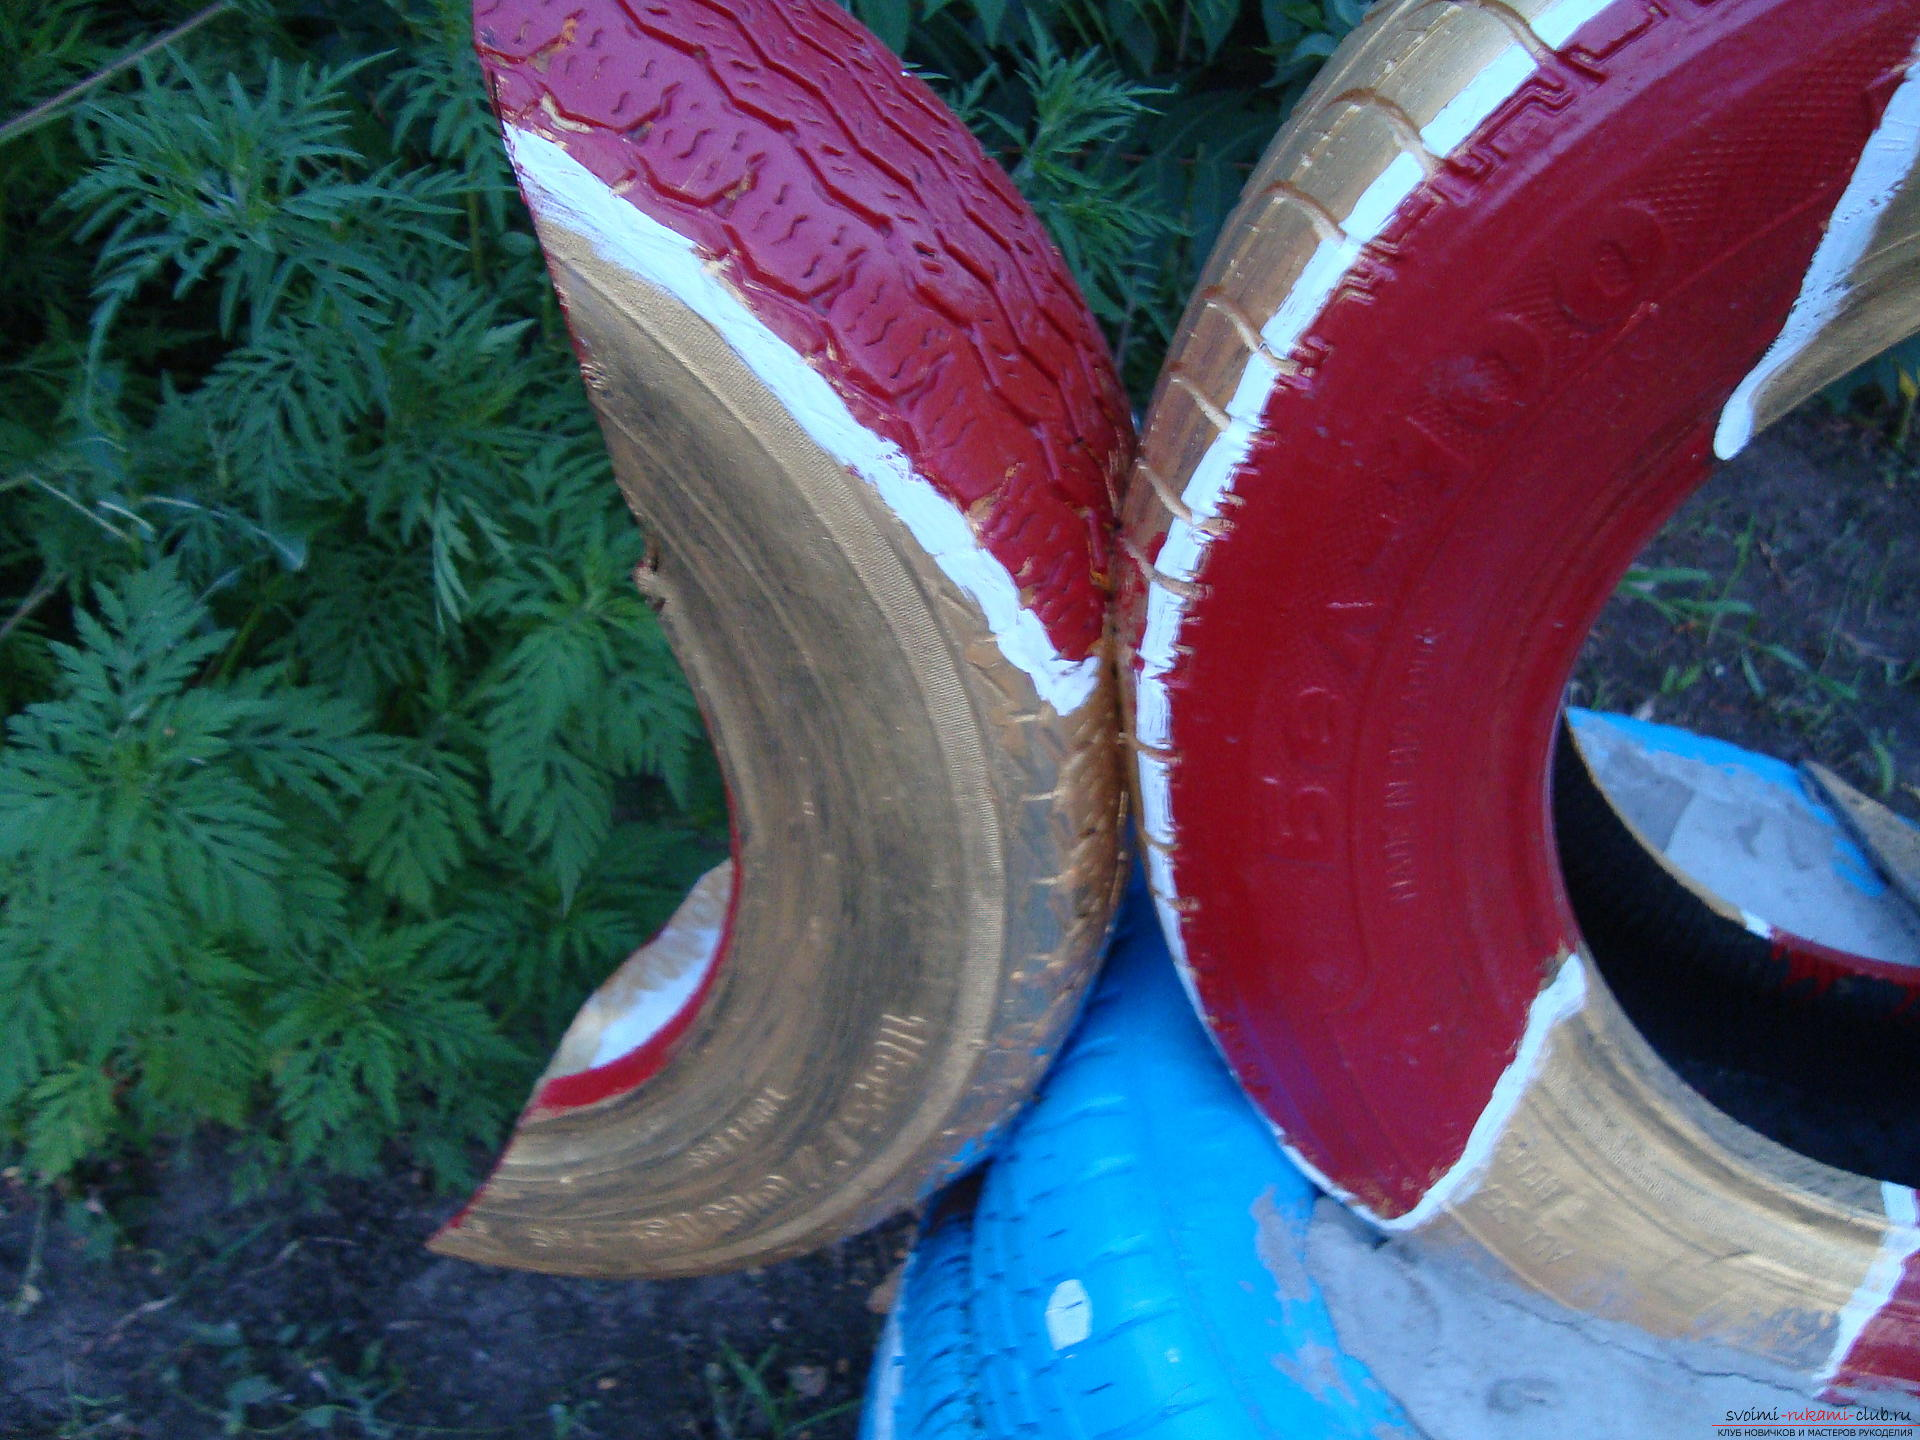 Different crafts made of tires can decorate the yard or playground .. Photo №6